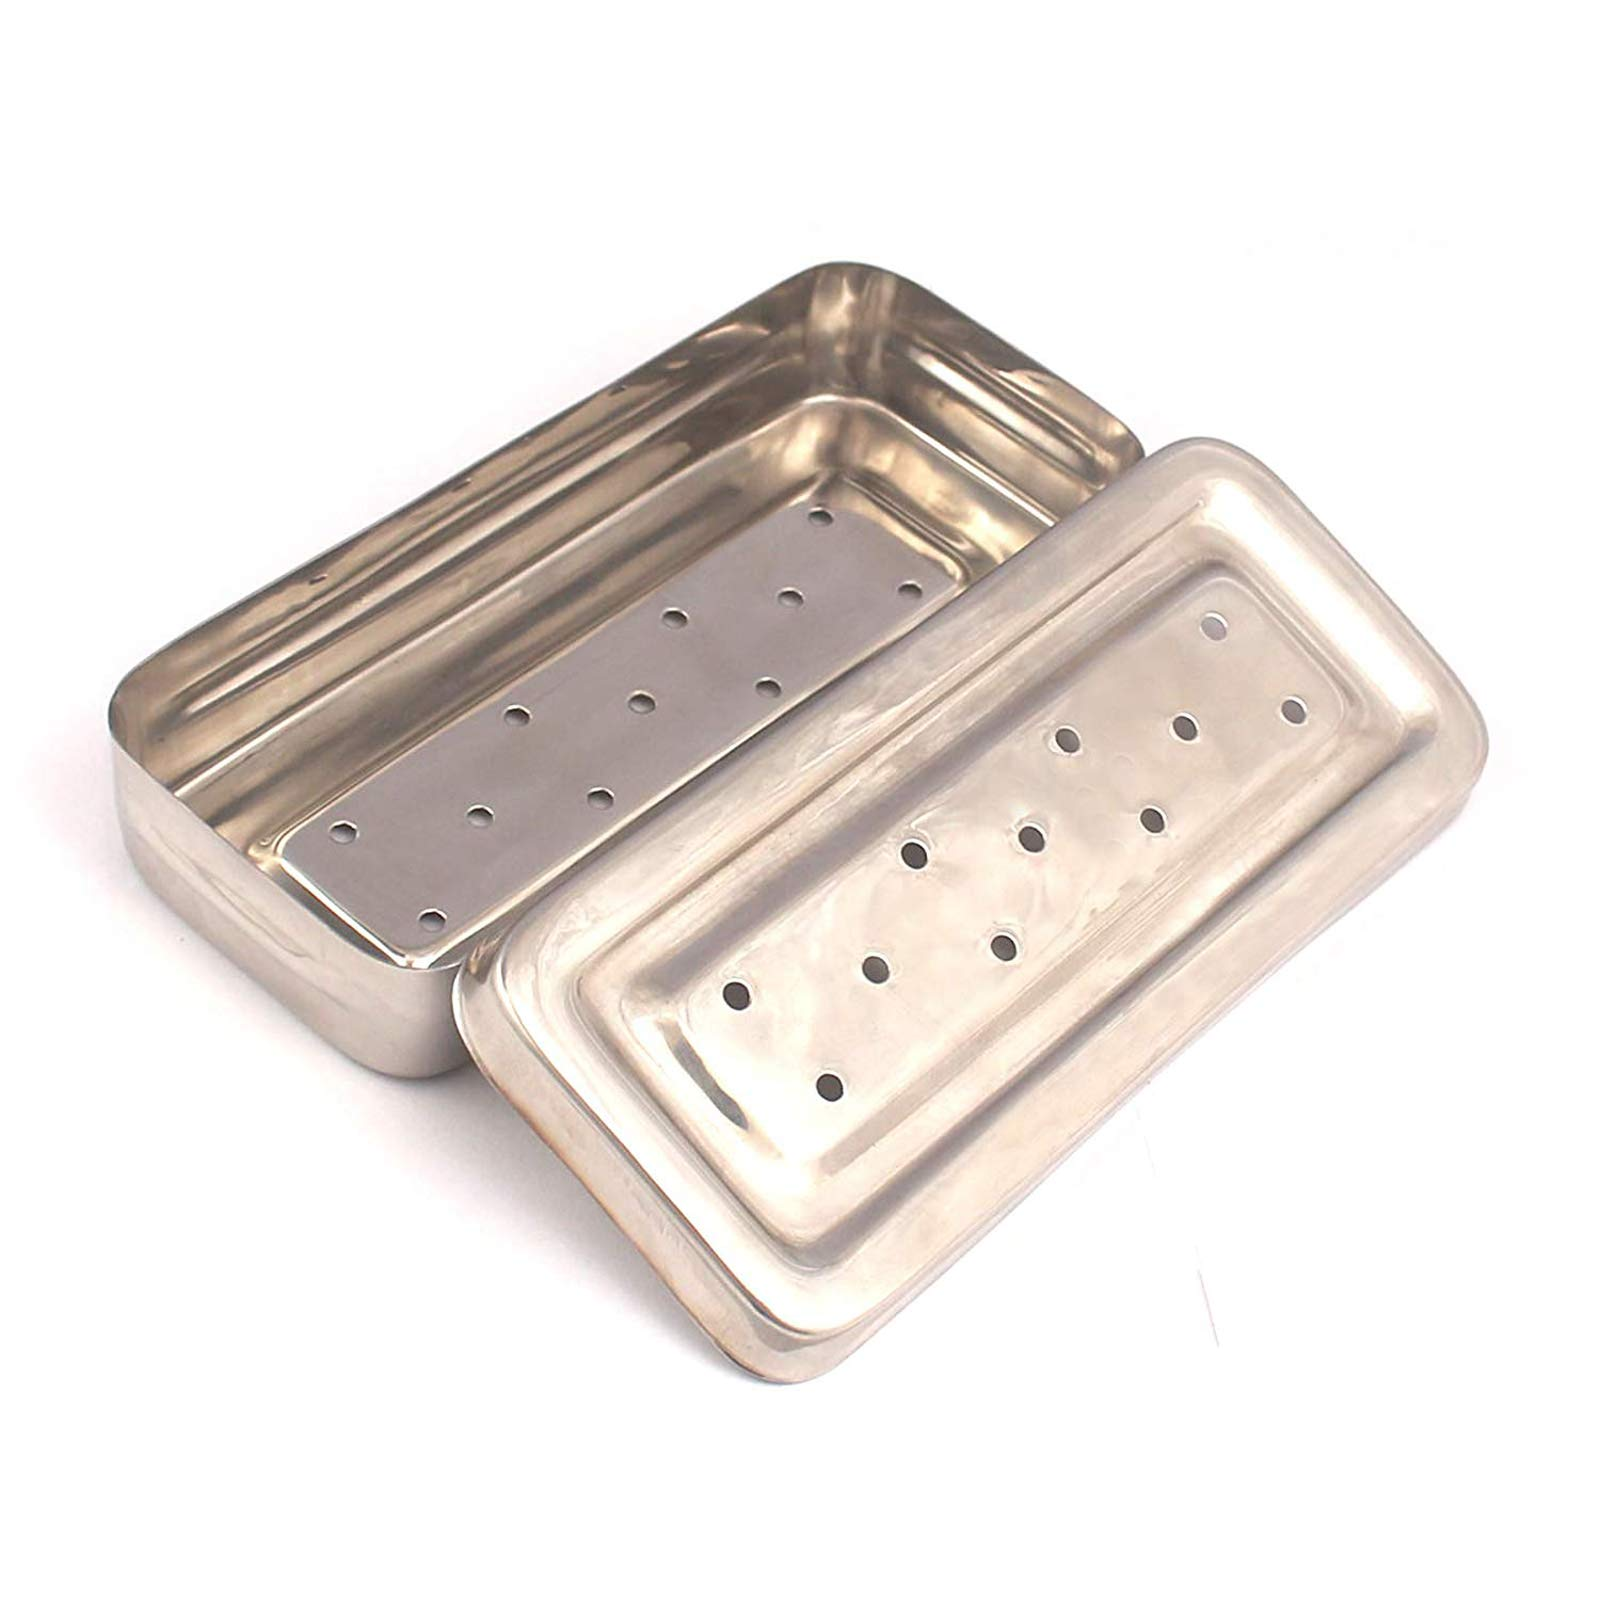 DDP 17x7x3 cm Instruments Box Perforated Stainless Steel Holloware Tray Box by DDP